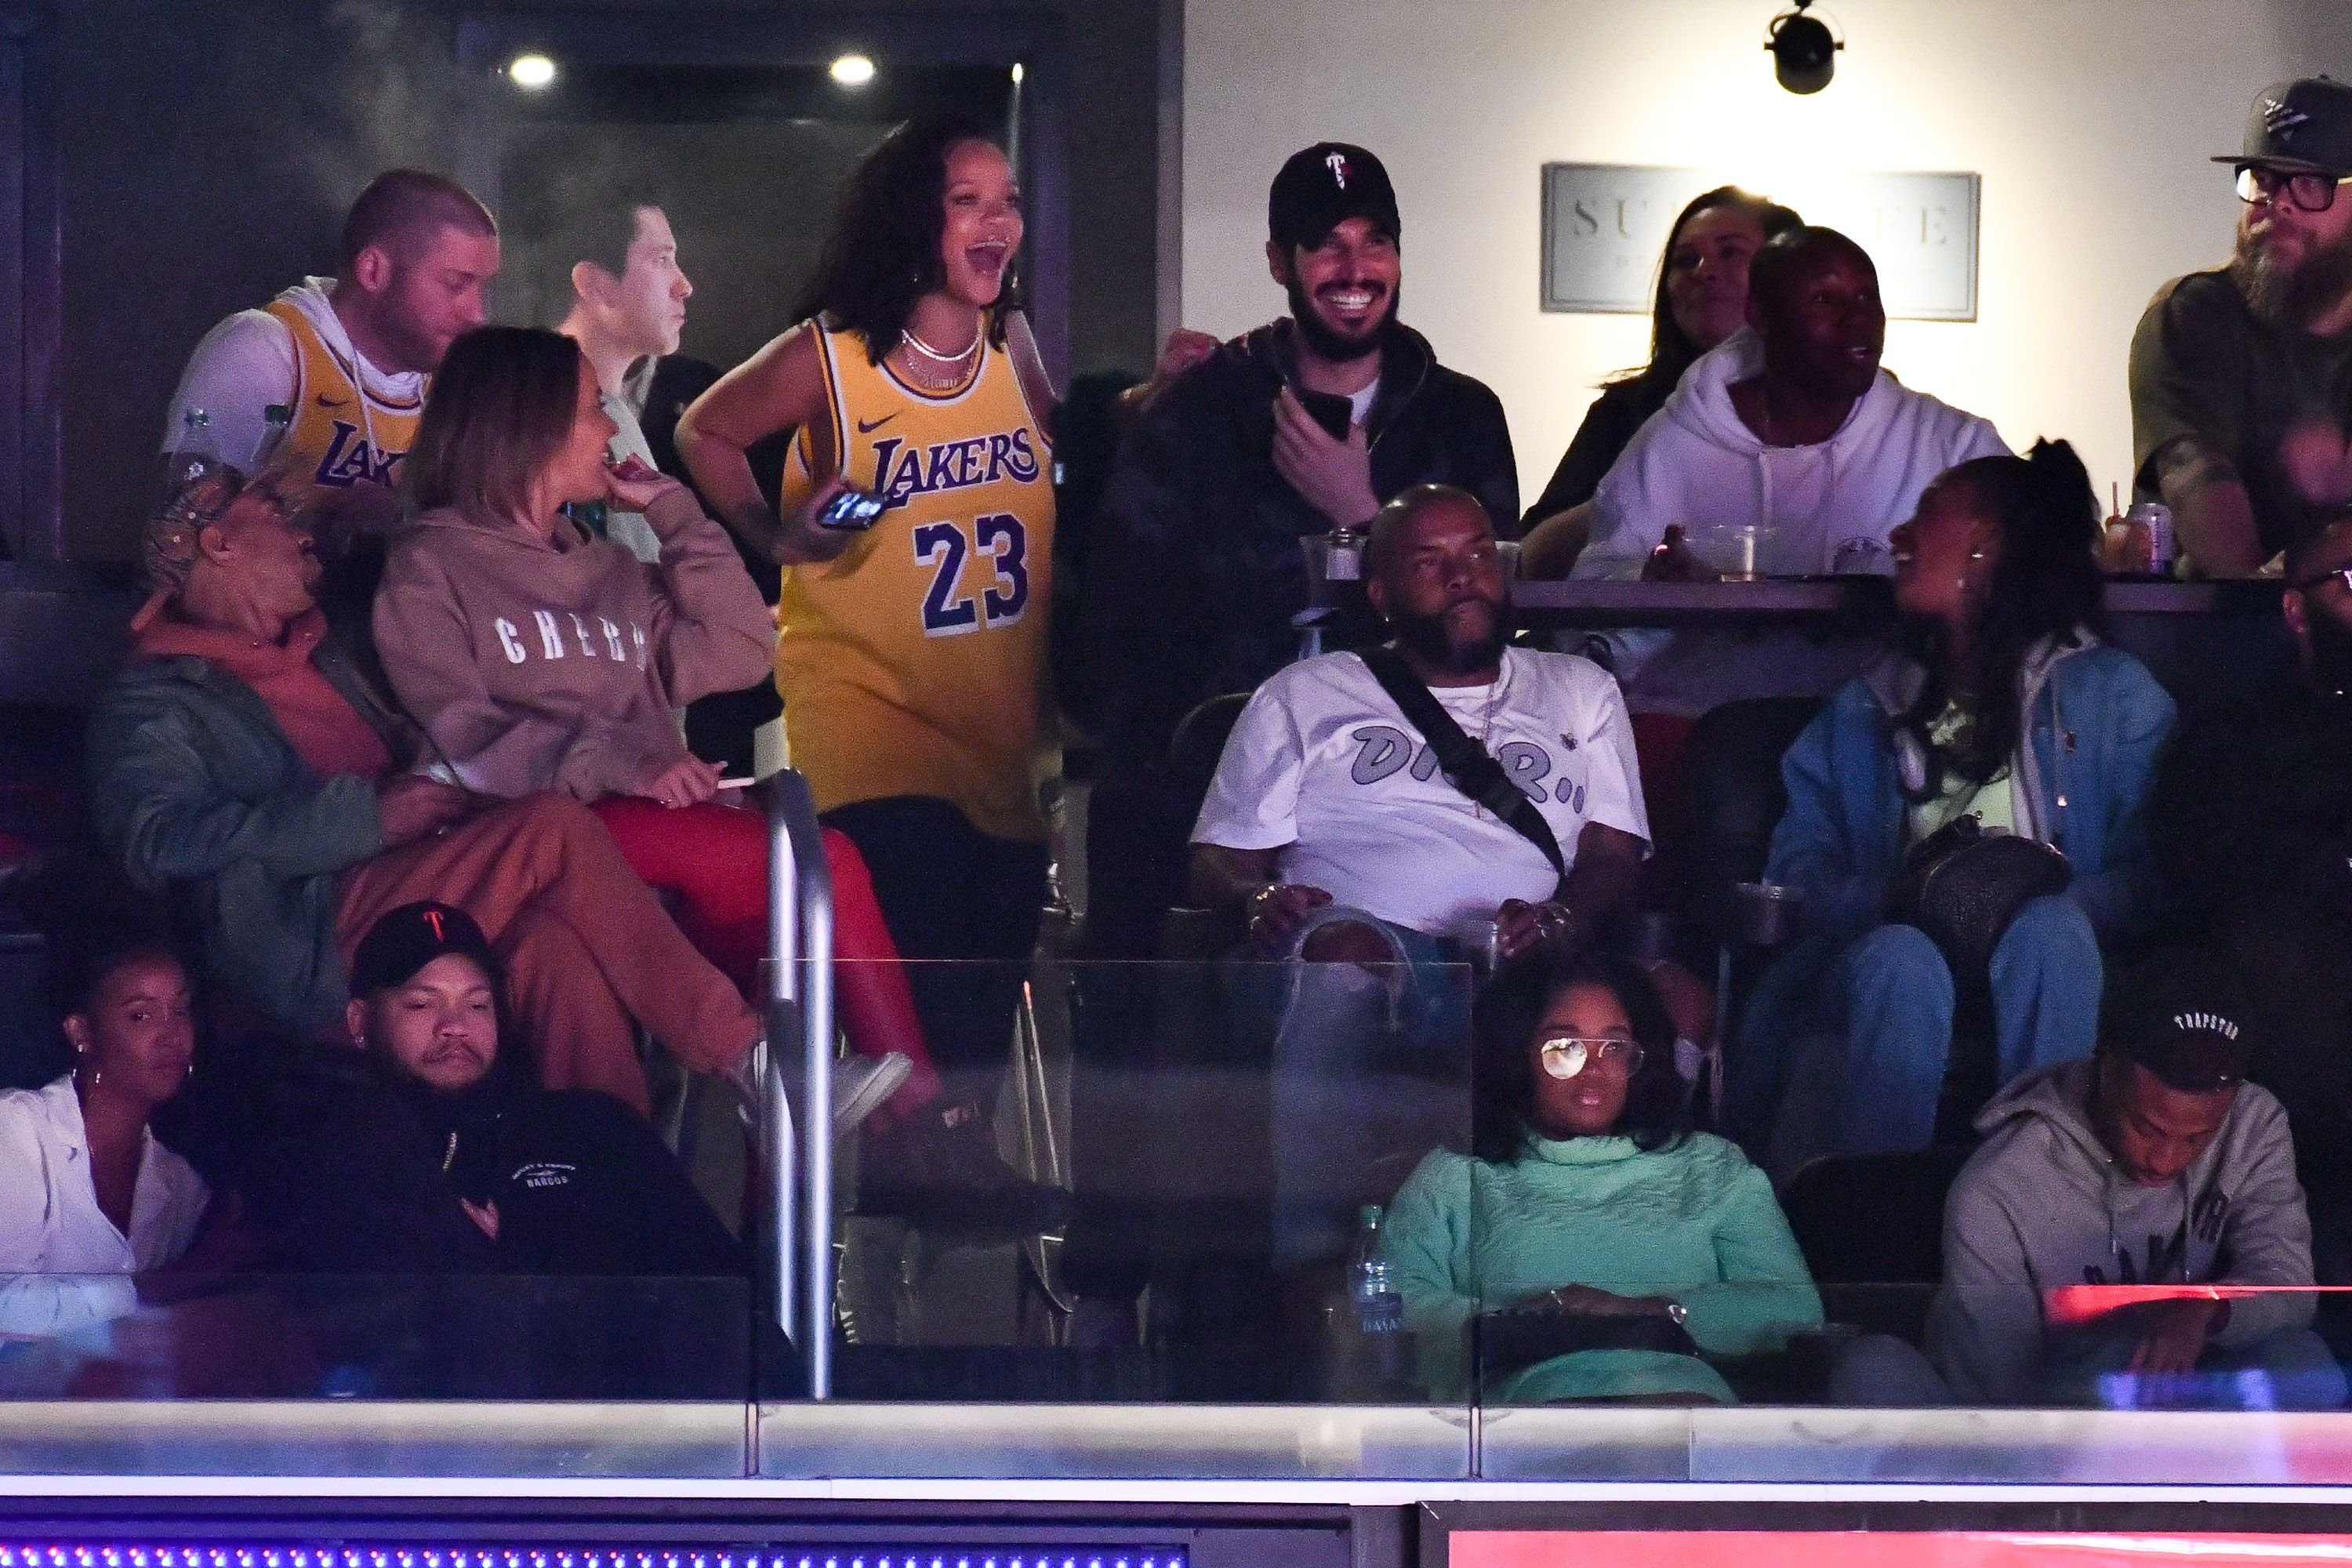 Rihanna Took Her Boyfriend Hassan Jameel On Public Date To Lakers Basketball Game